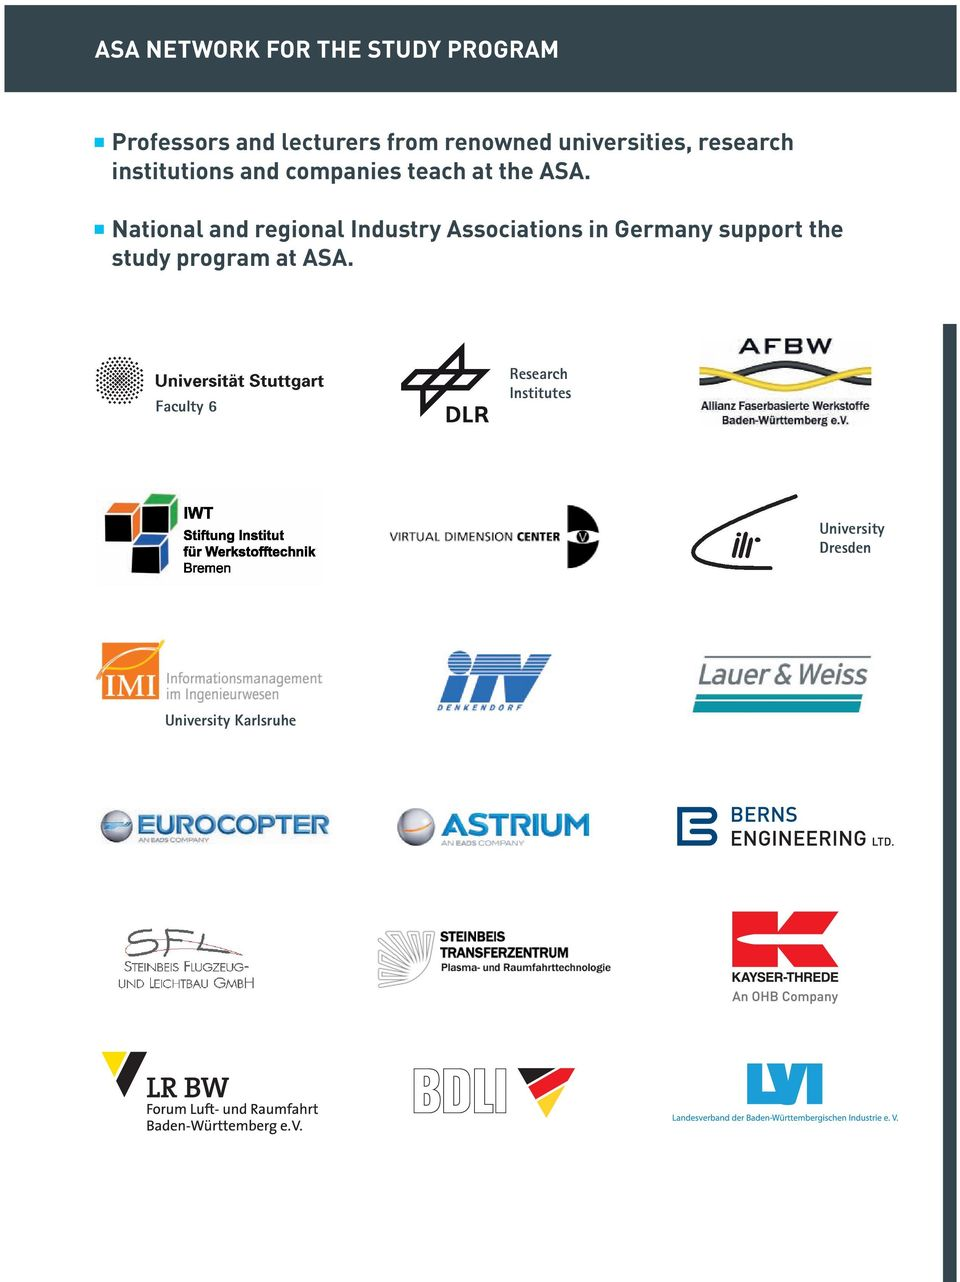 National and regional Industry Associations in Germany support the study